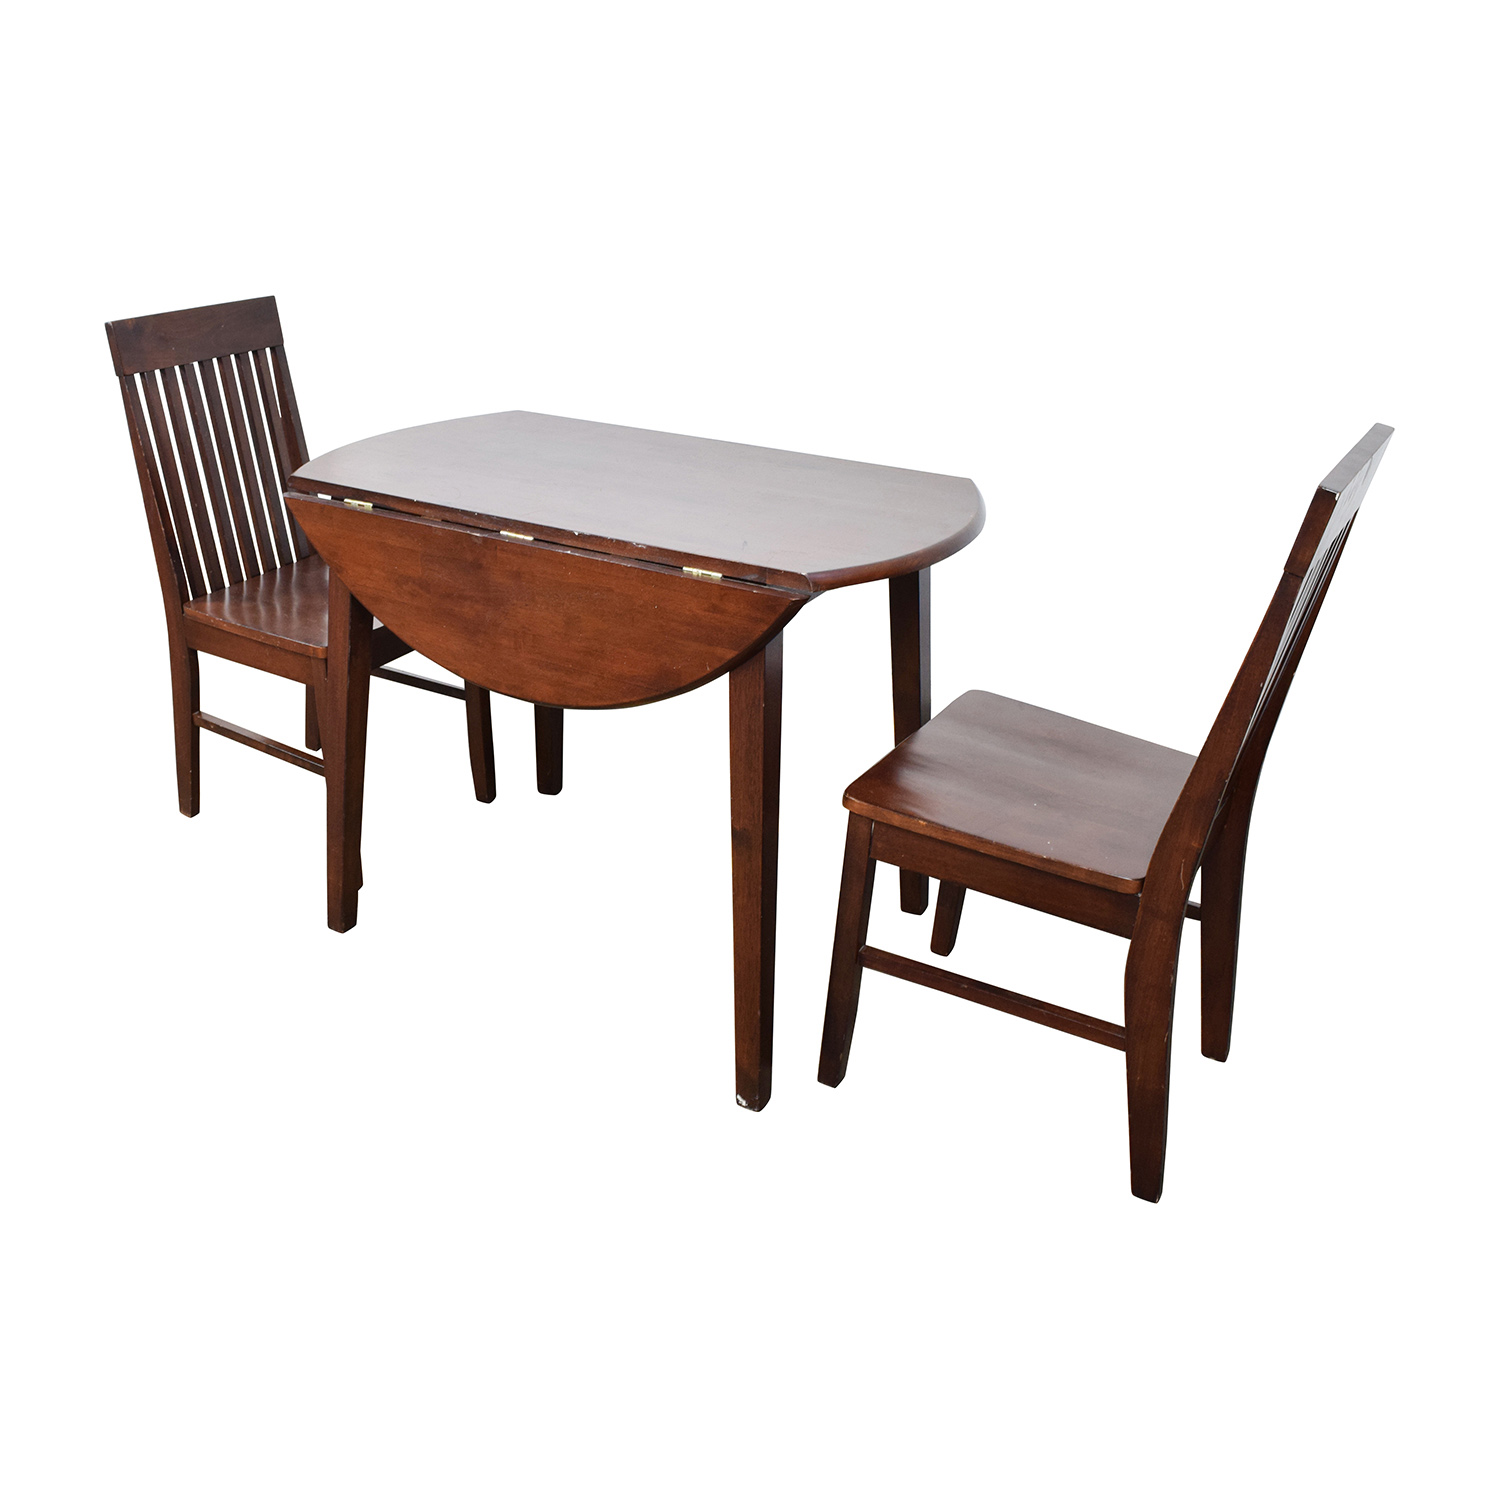 Secondhand Chairs And Tables: Round Dining Table With Folding Sides And Chairs